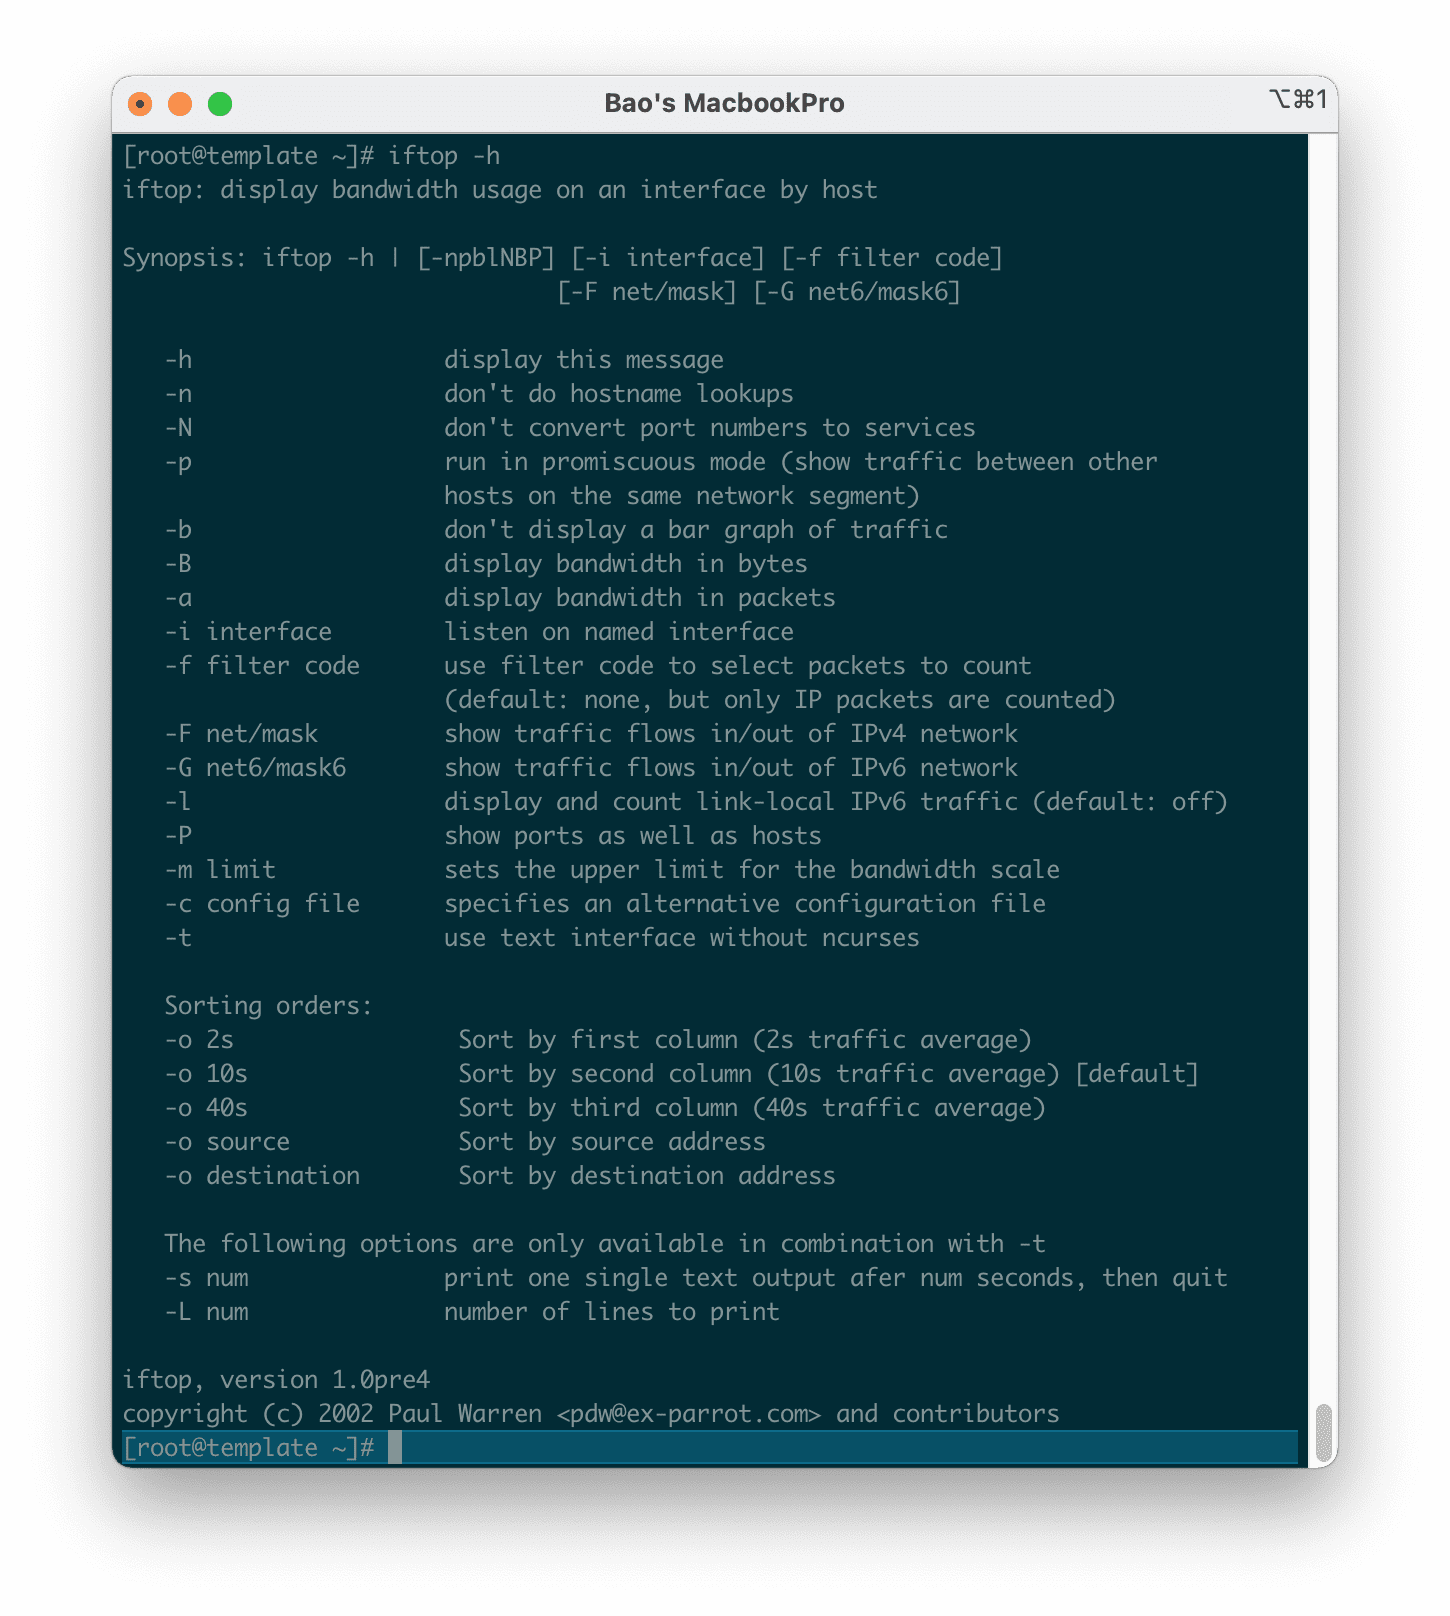 iftop-linux-network-bandwidth-monitoring-tool